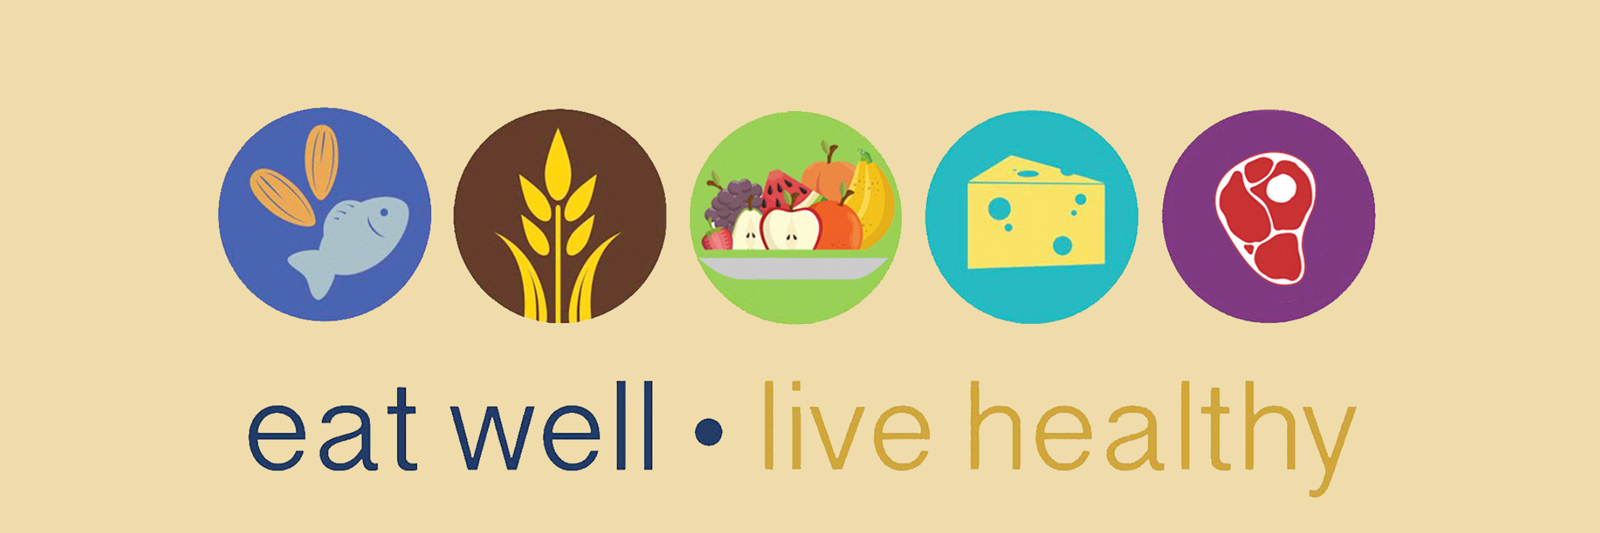 "graphic: 5 circular icons: fish, grain, fruit, cheese, meat with ""eat well • live healthy"" text below"